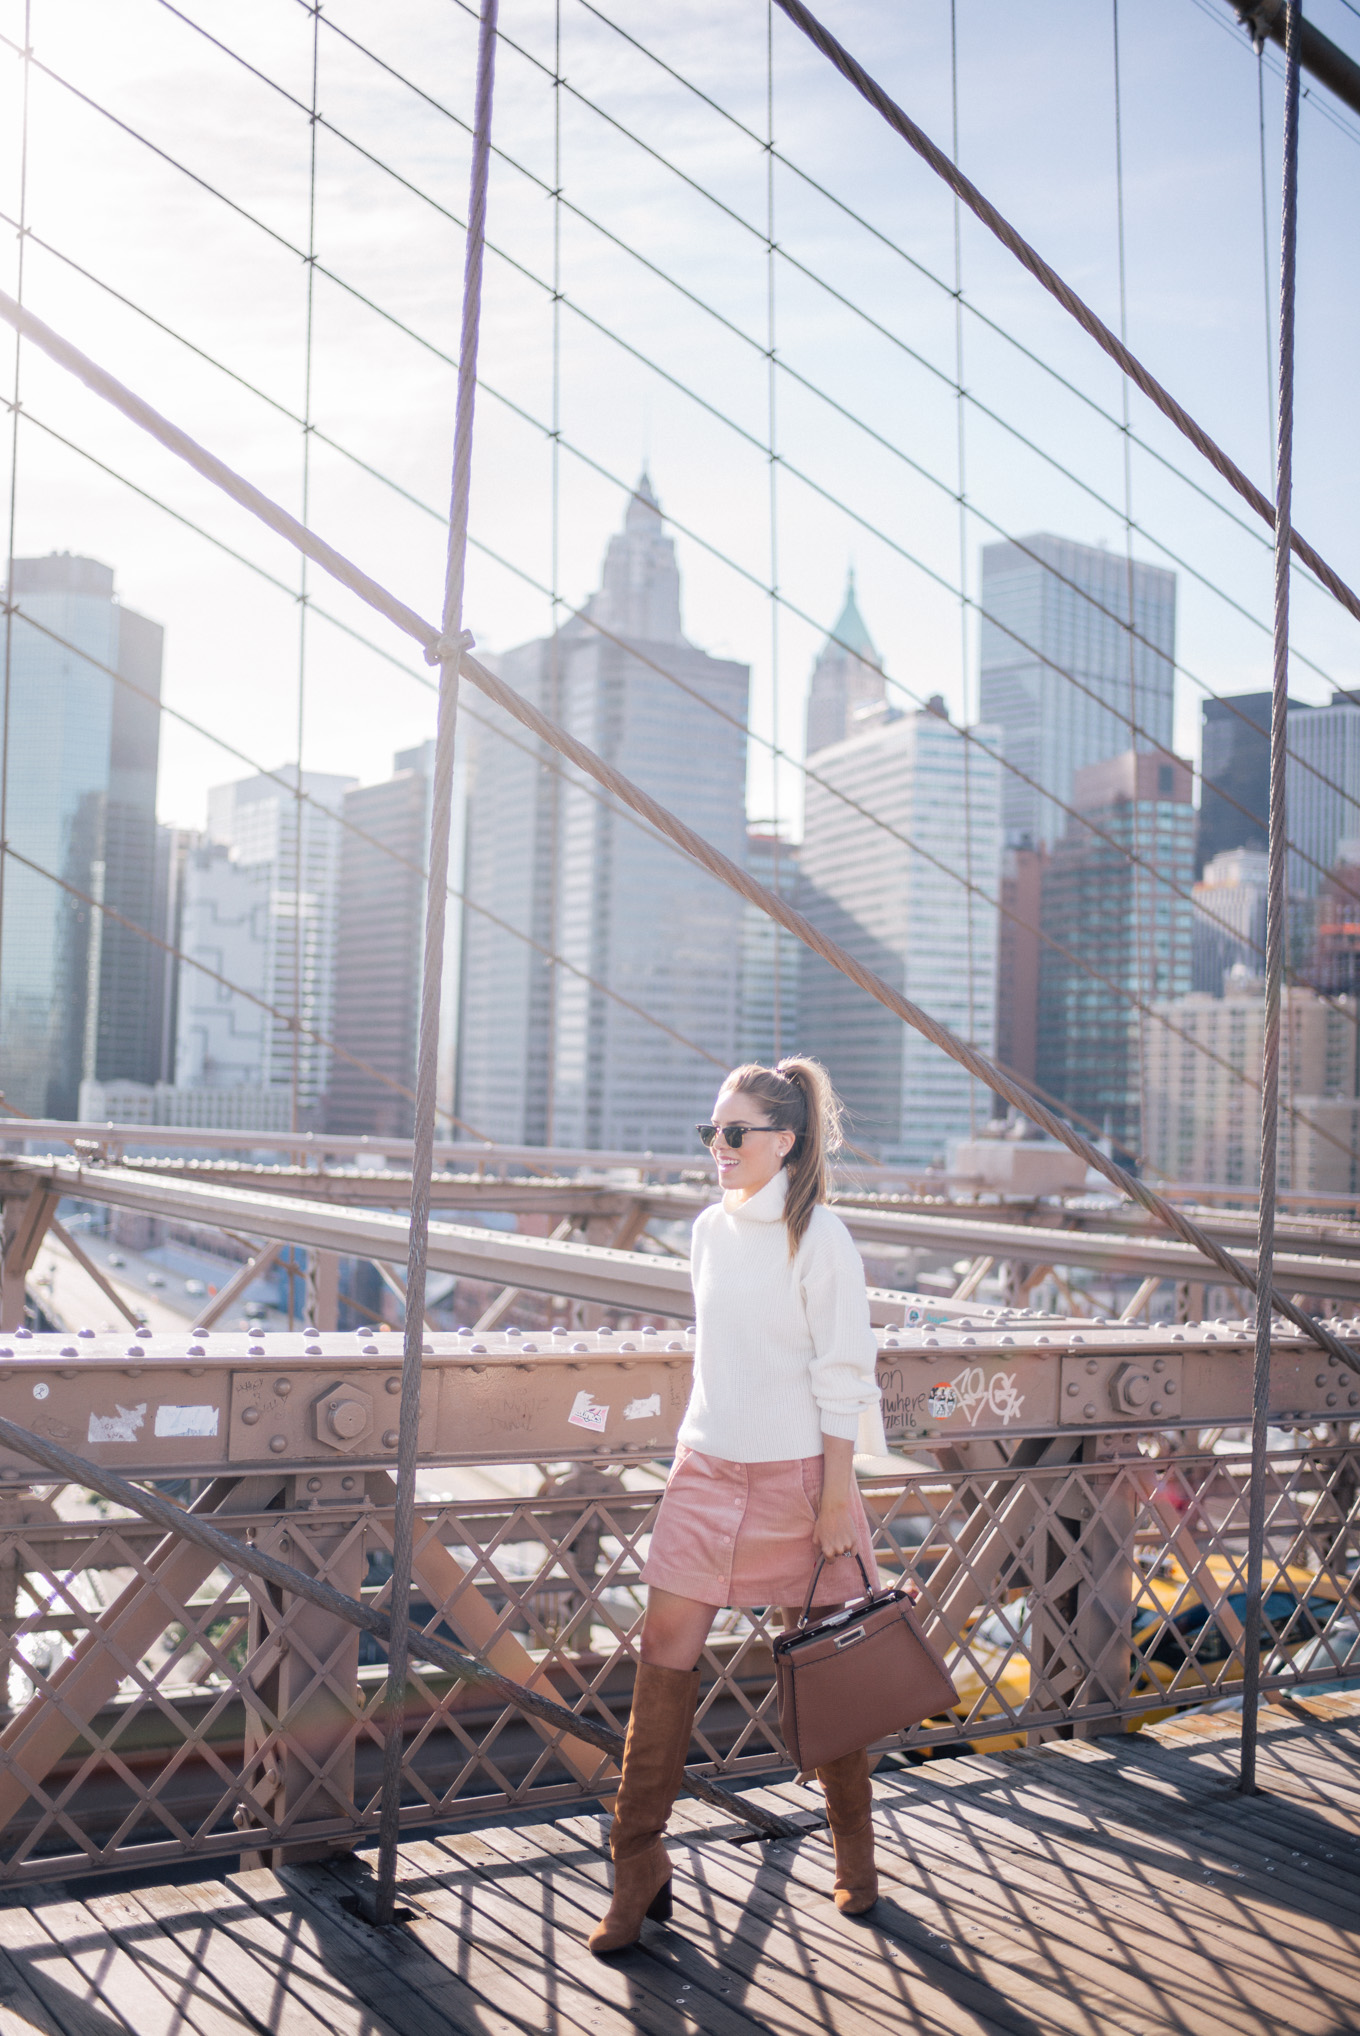 gmg-brooklyn-bridge-1009731